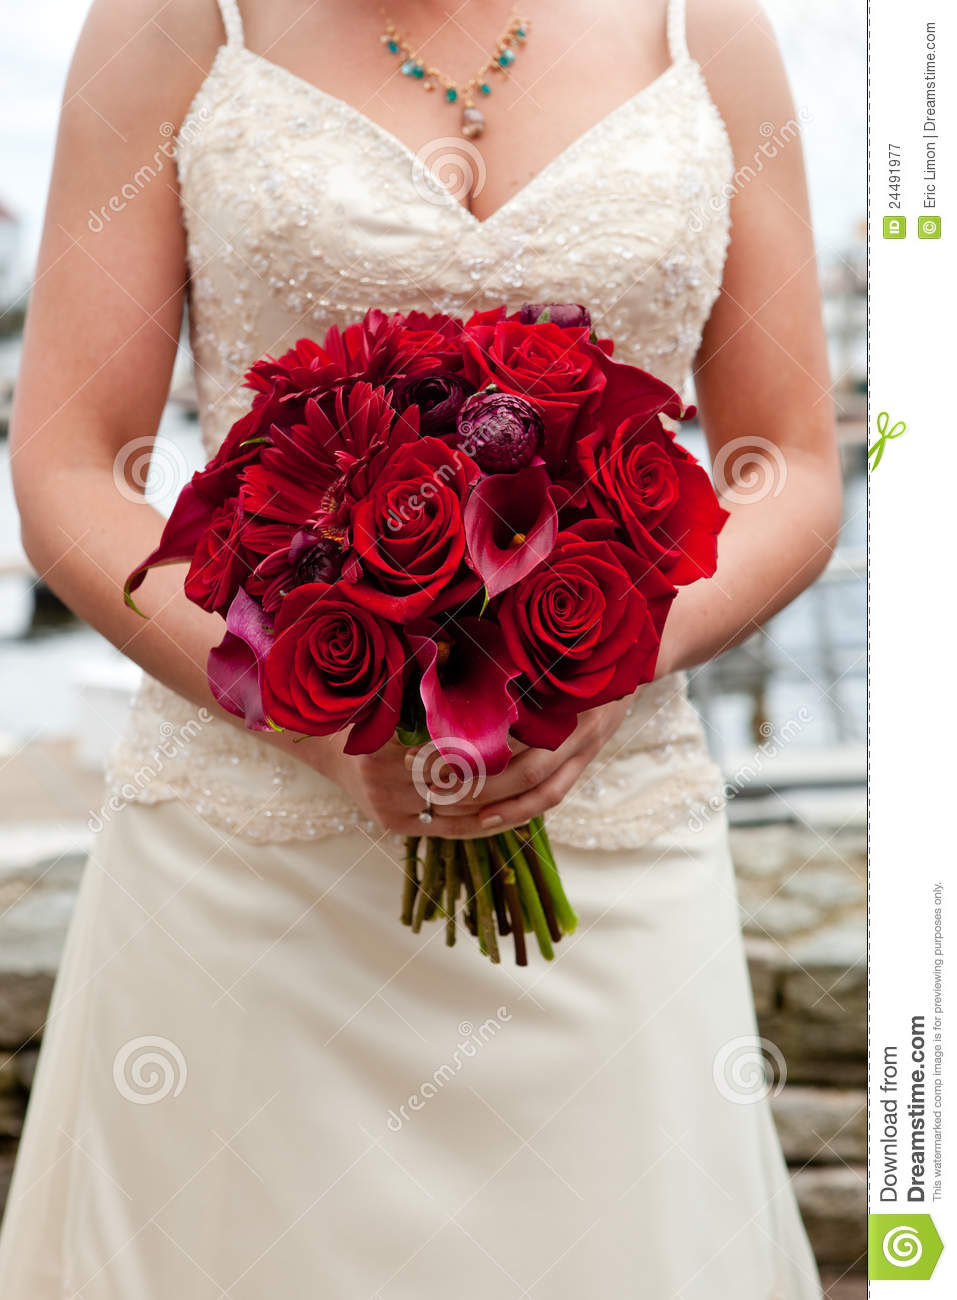 red wedding bouquet royalty free stock photography image 24491977. Black Bedroom Furniture Sets. Home Design Ideas